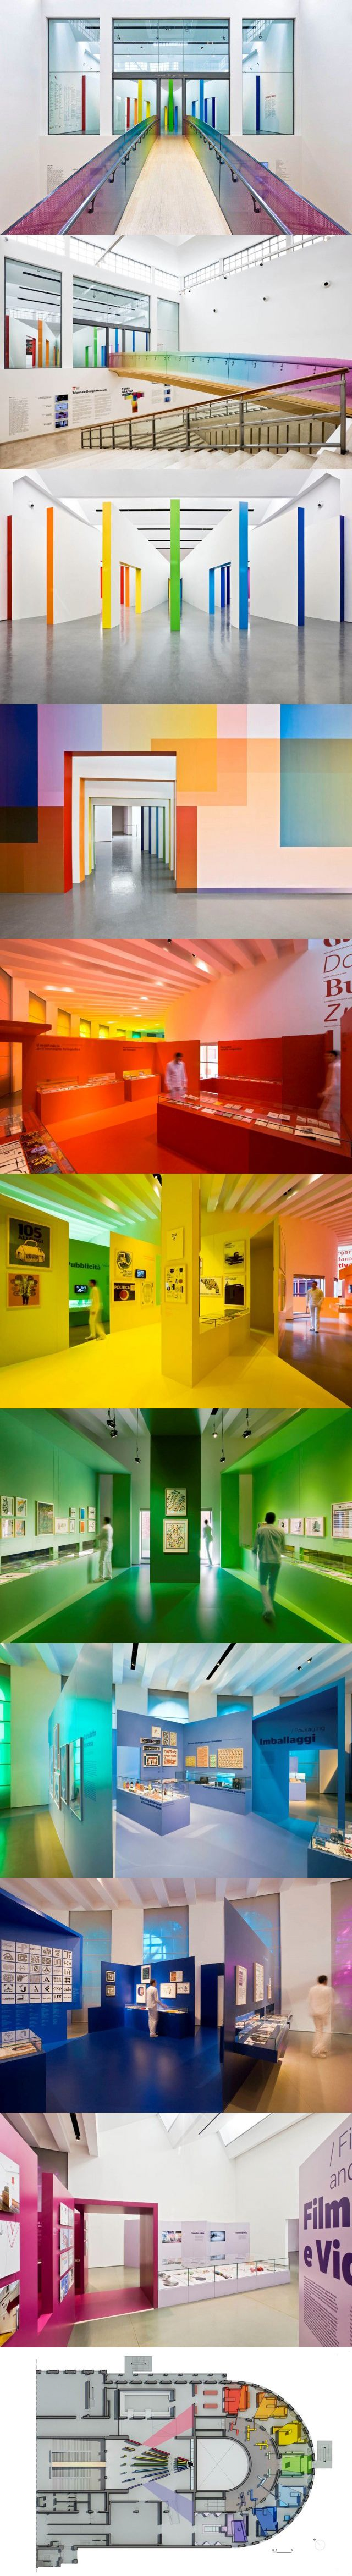 The Brand Shop @ Triennale Design Museum